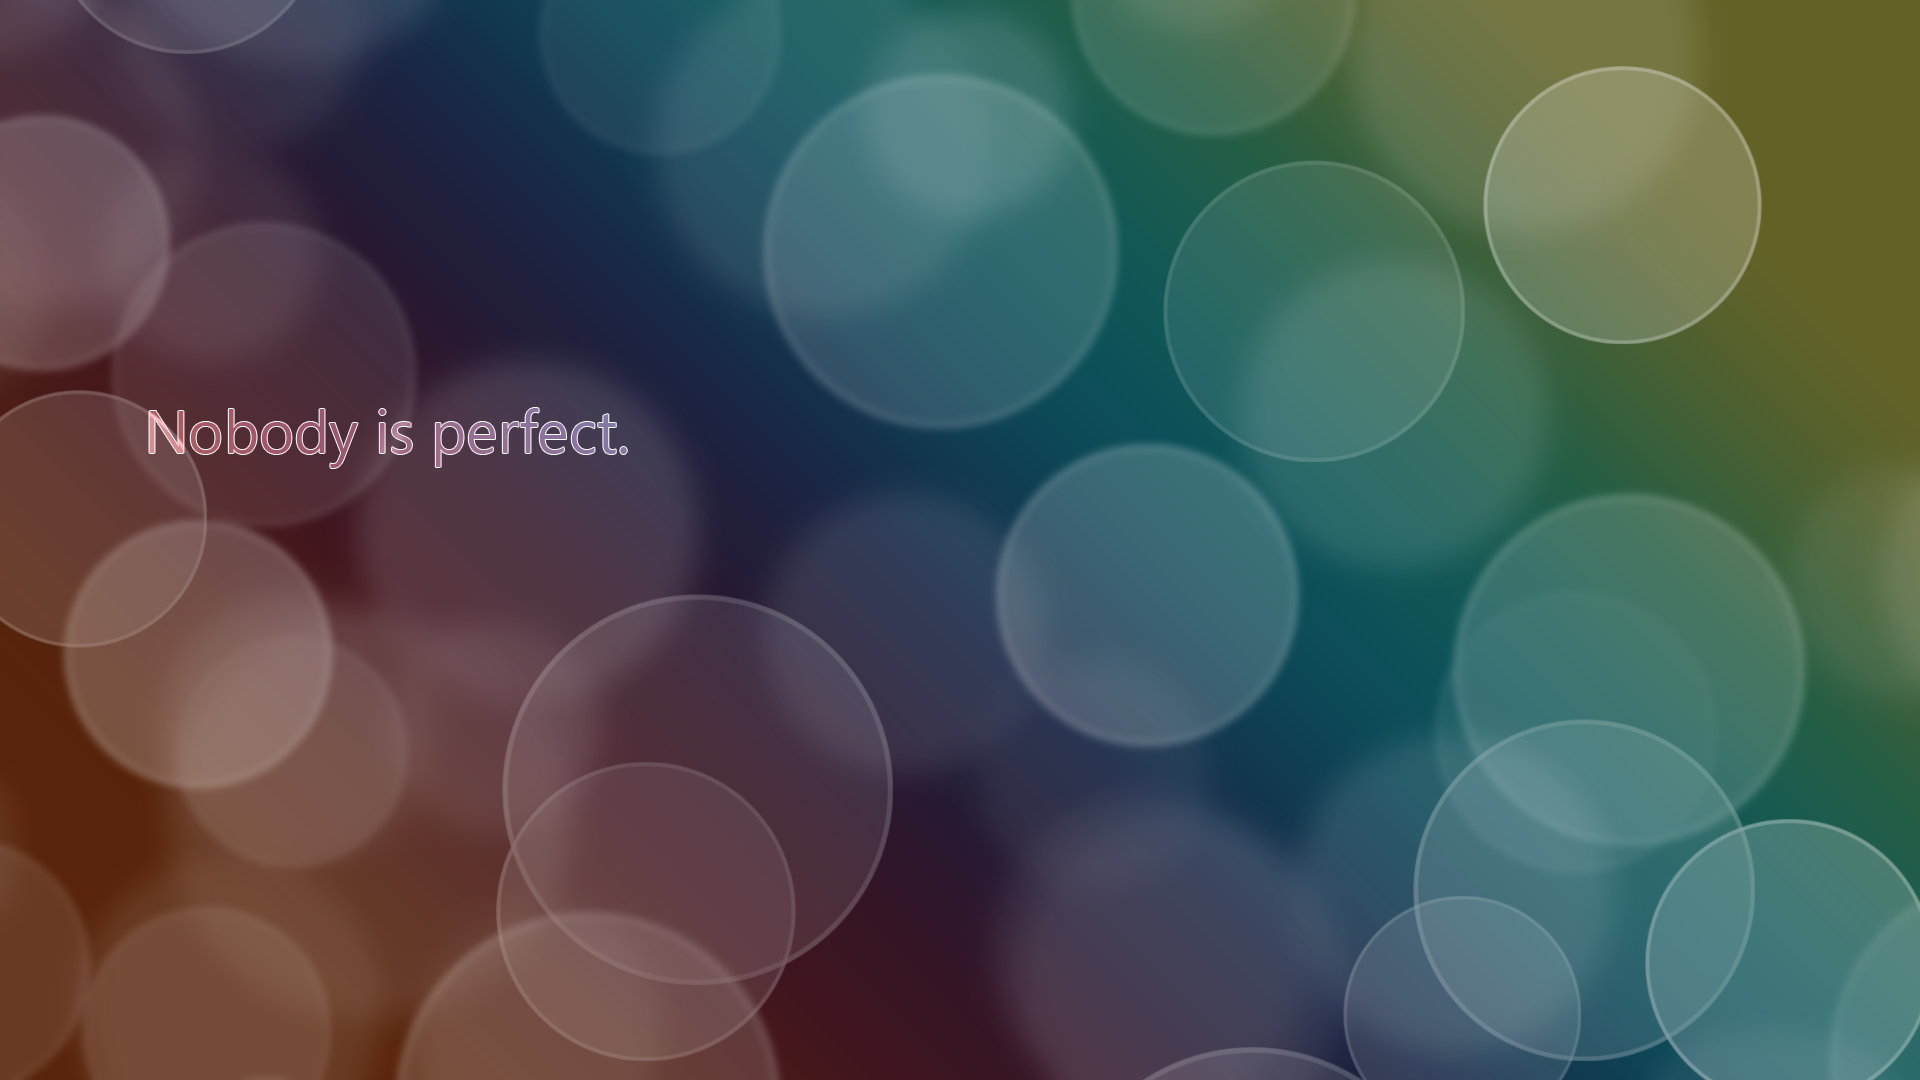 Nobody is perfect by peterbaumann on deviantart - Nobody is perfect mobel ...